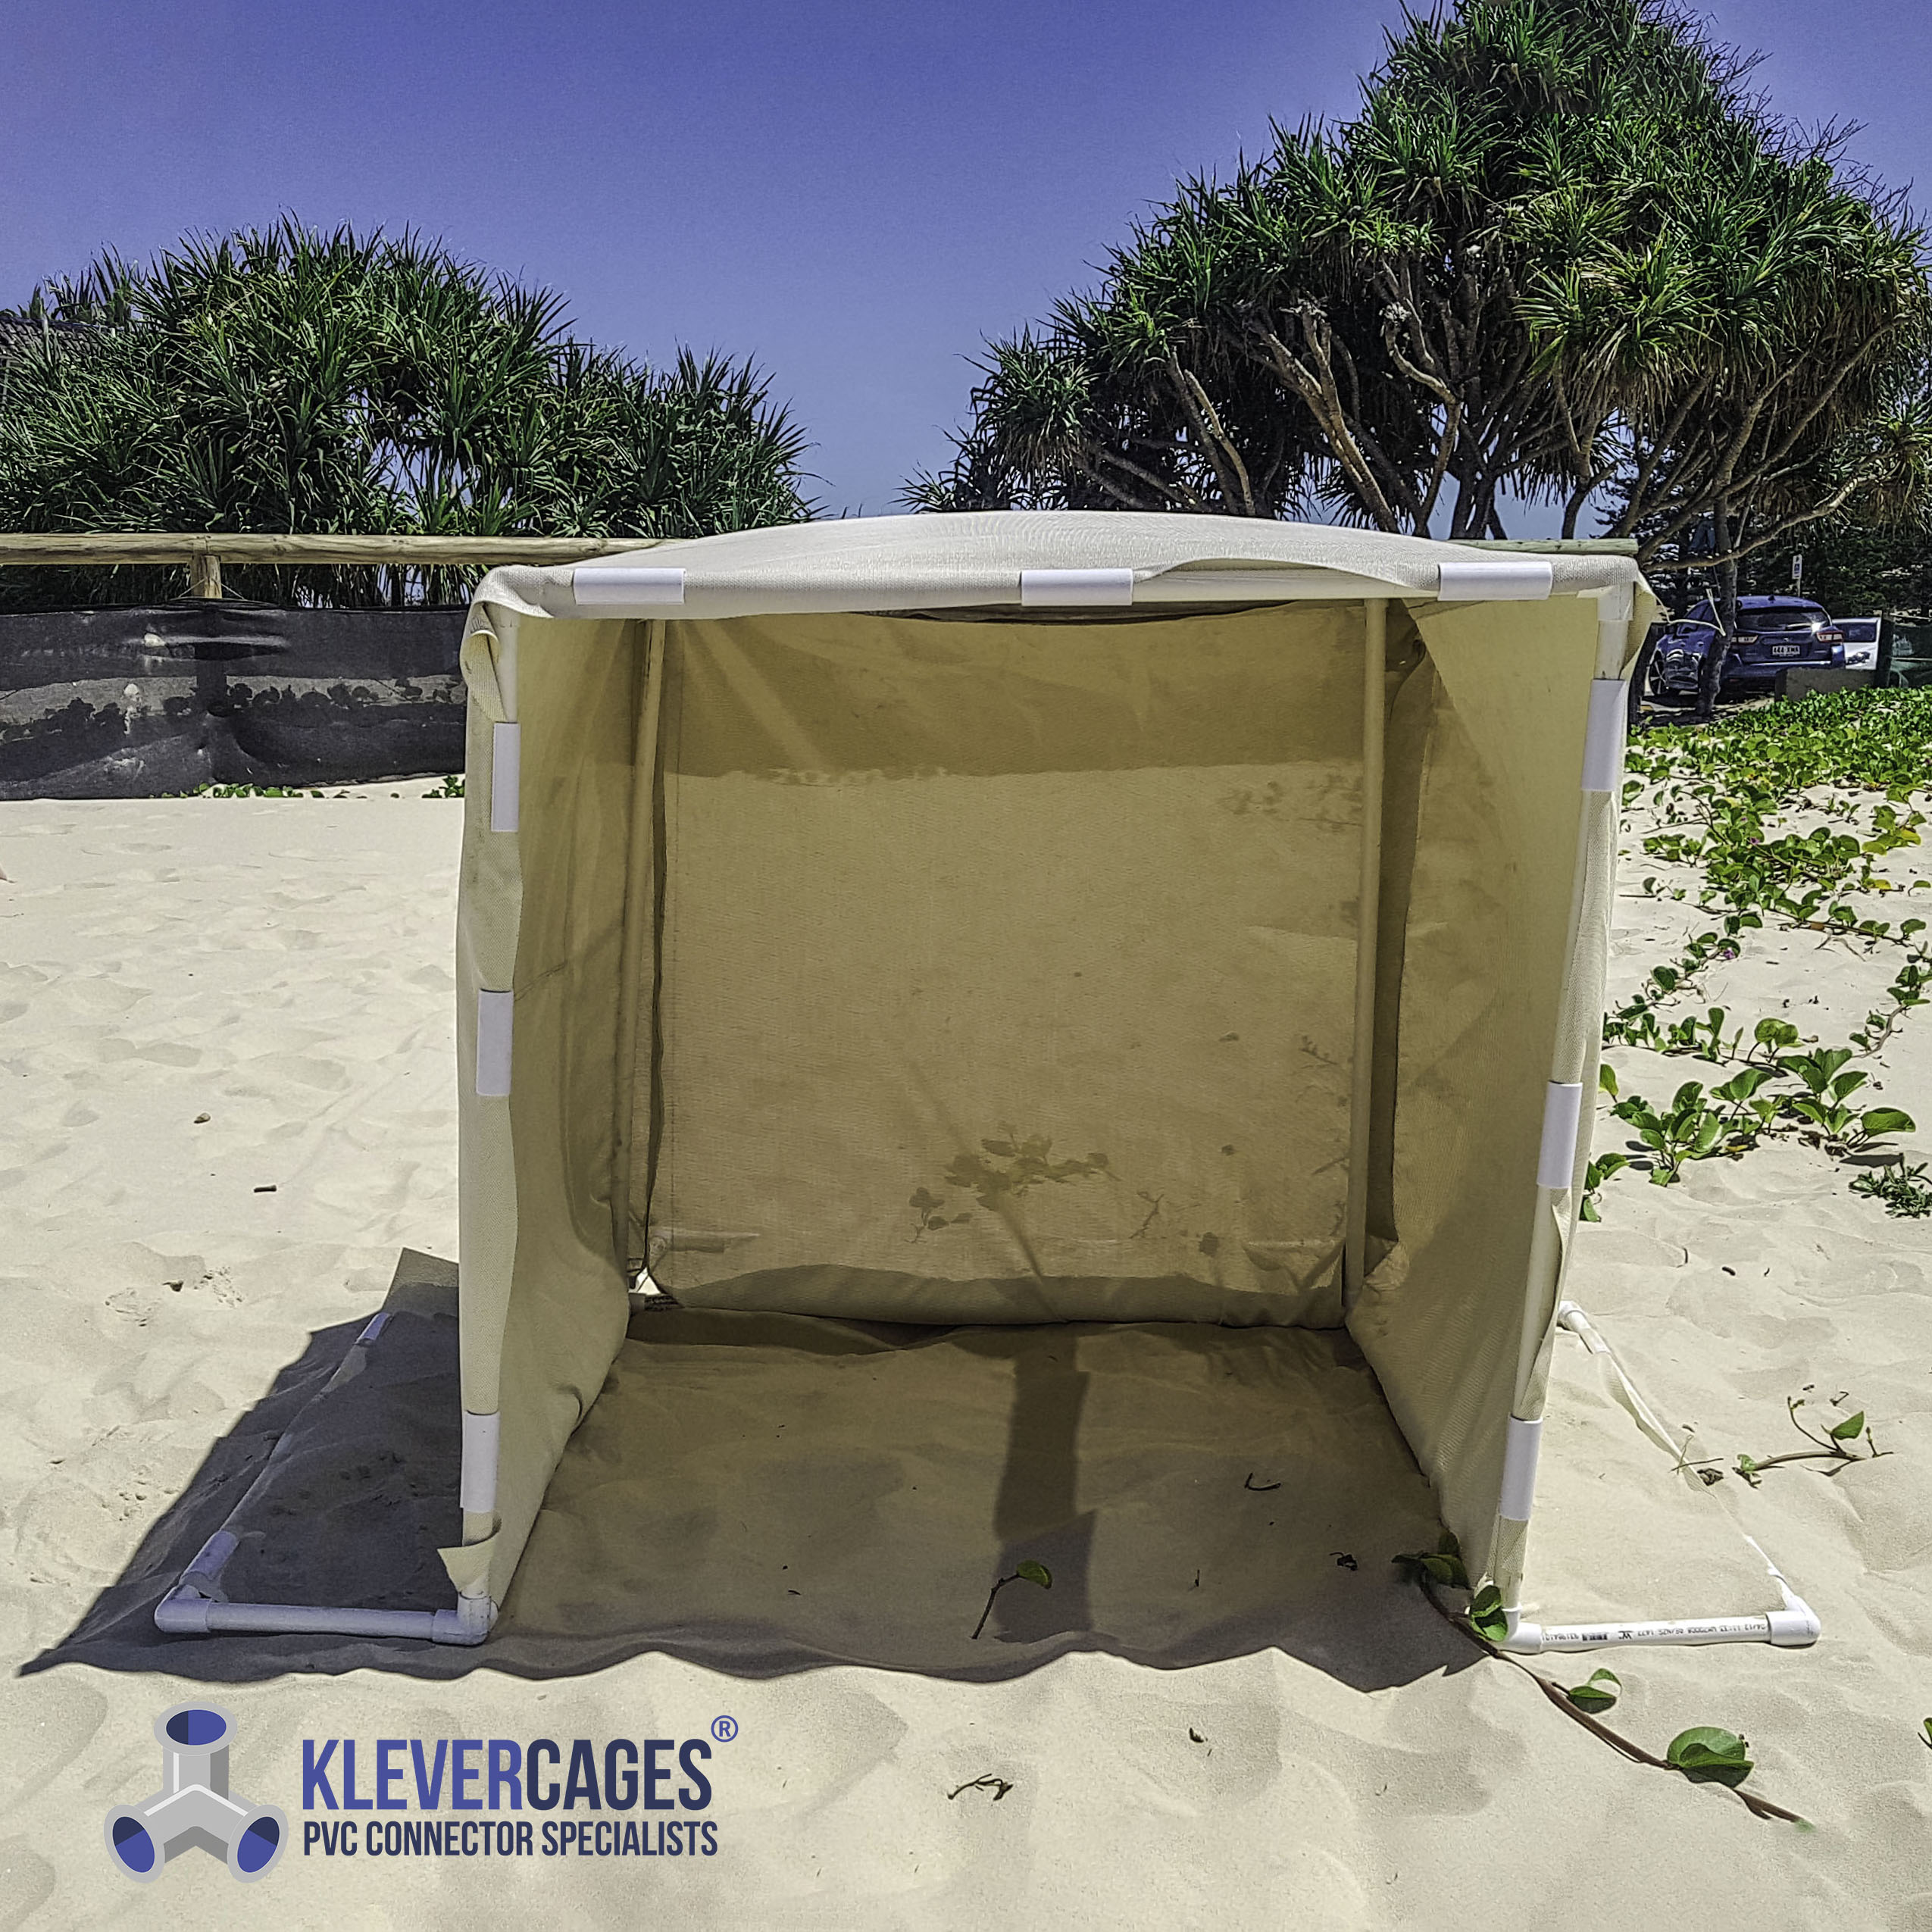 beach shade collapsible and portable built with PVC pipe and connector fittings from Klever Cages